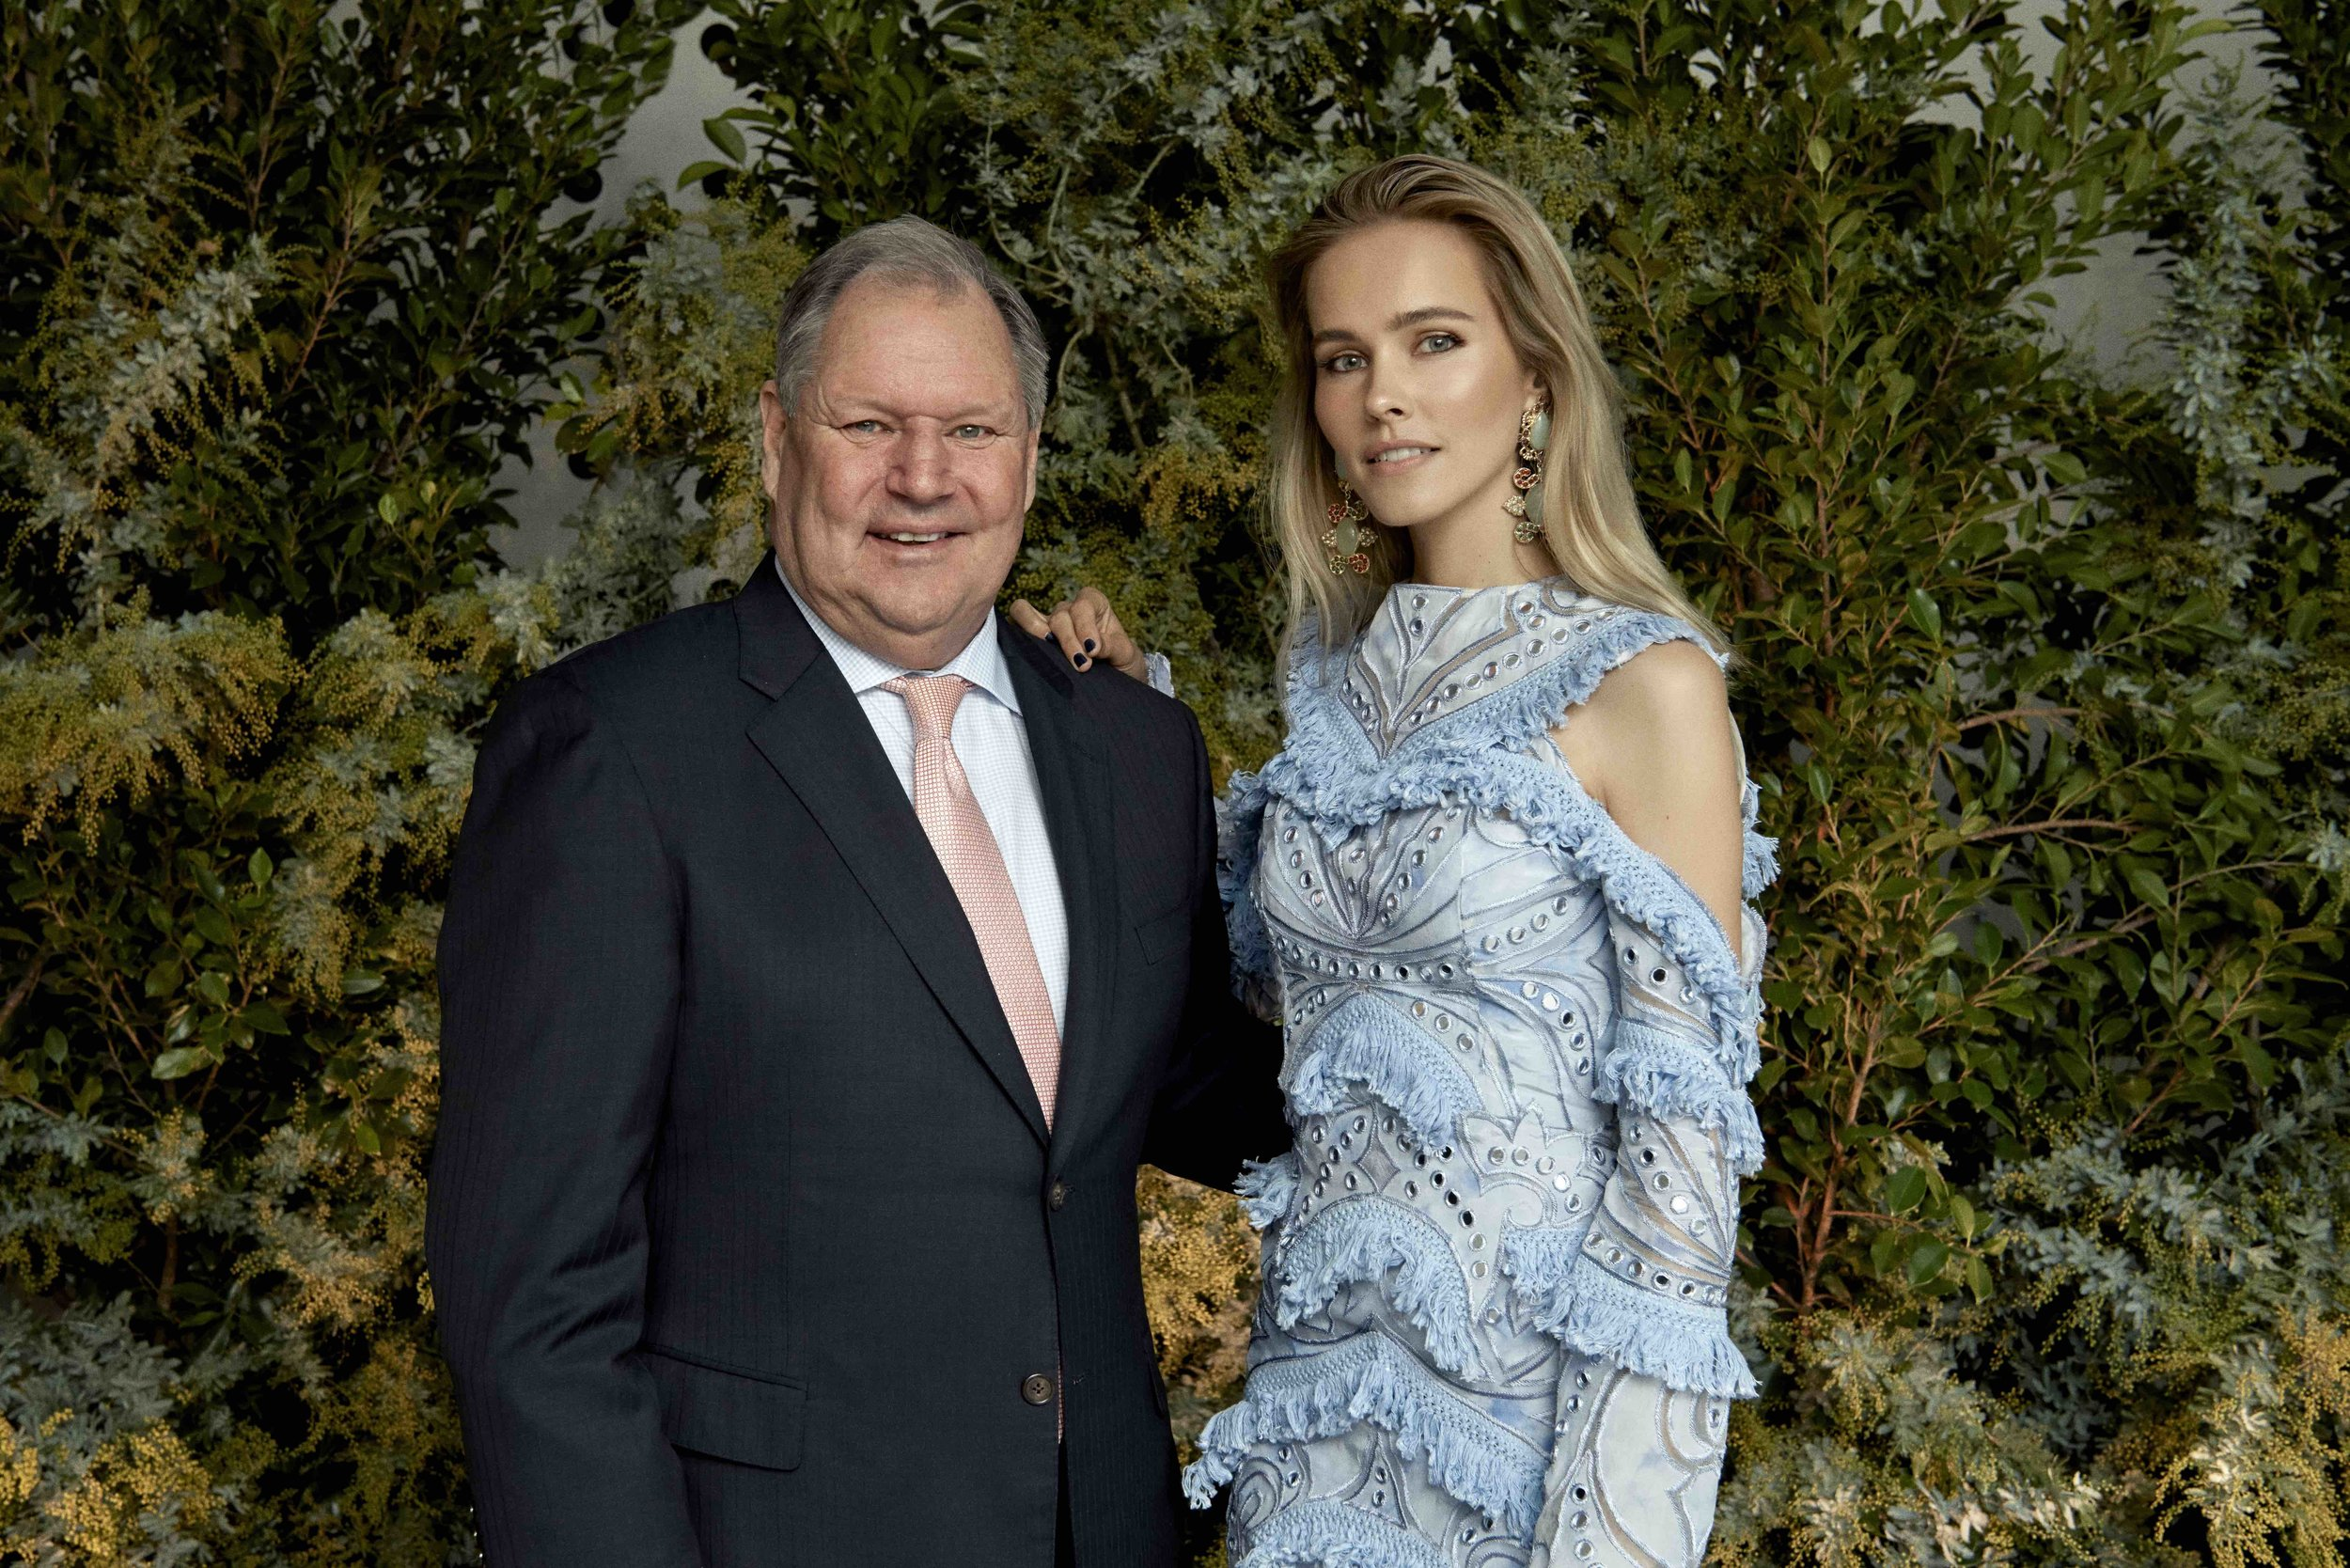 msfw-isabel-lucas-lord-mayor-robert-doyle.jpg